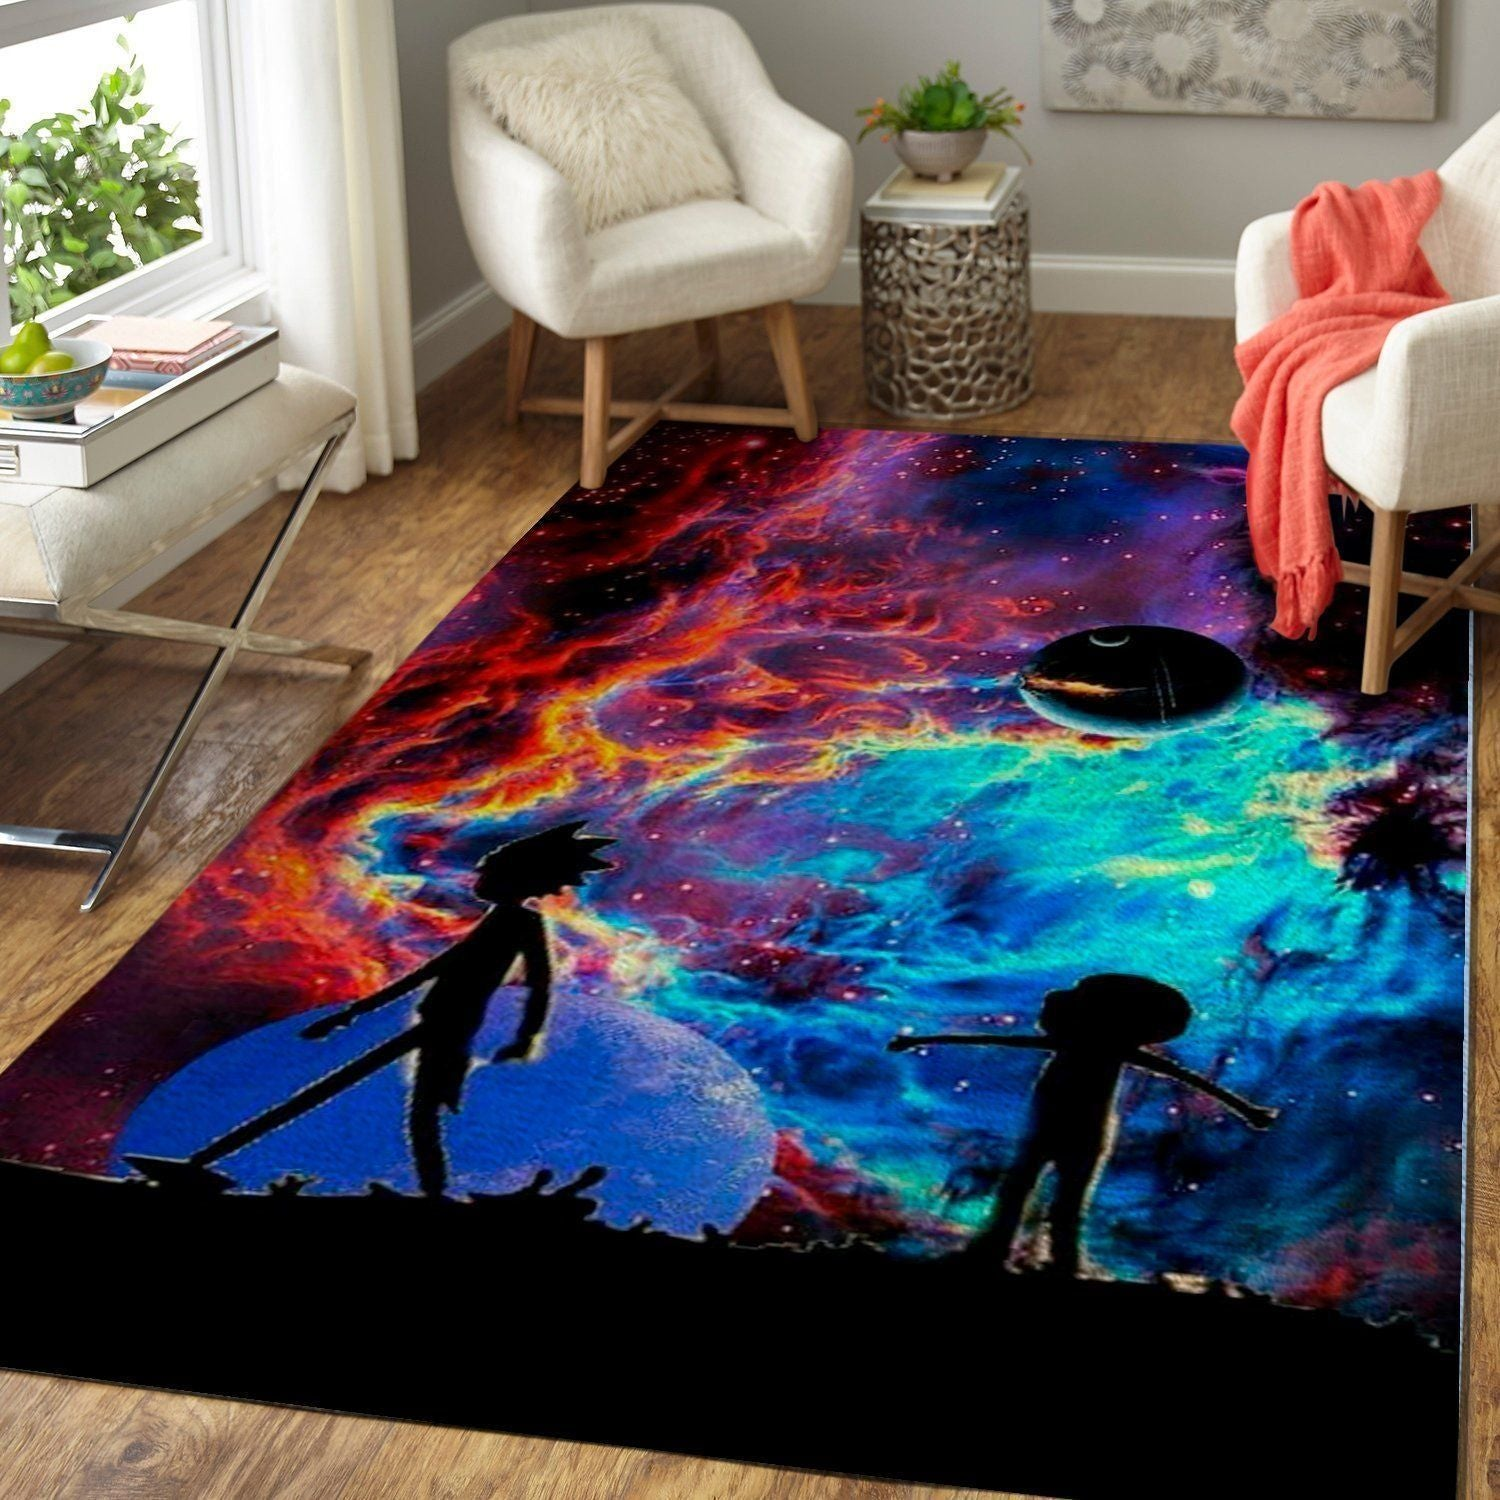 Rick & Morty Area Rugs / Movie Living Room Carpet, Custom Floor Decor